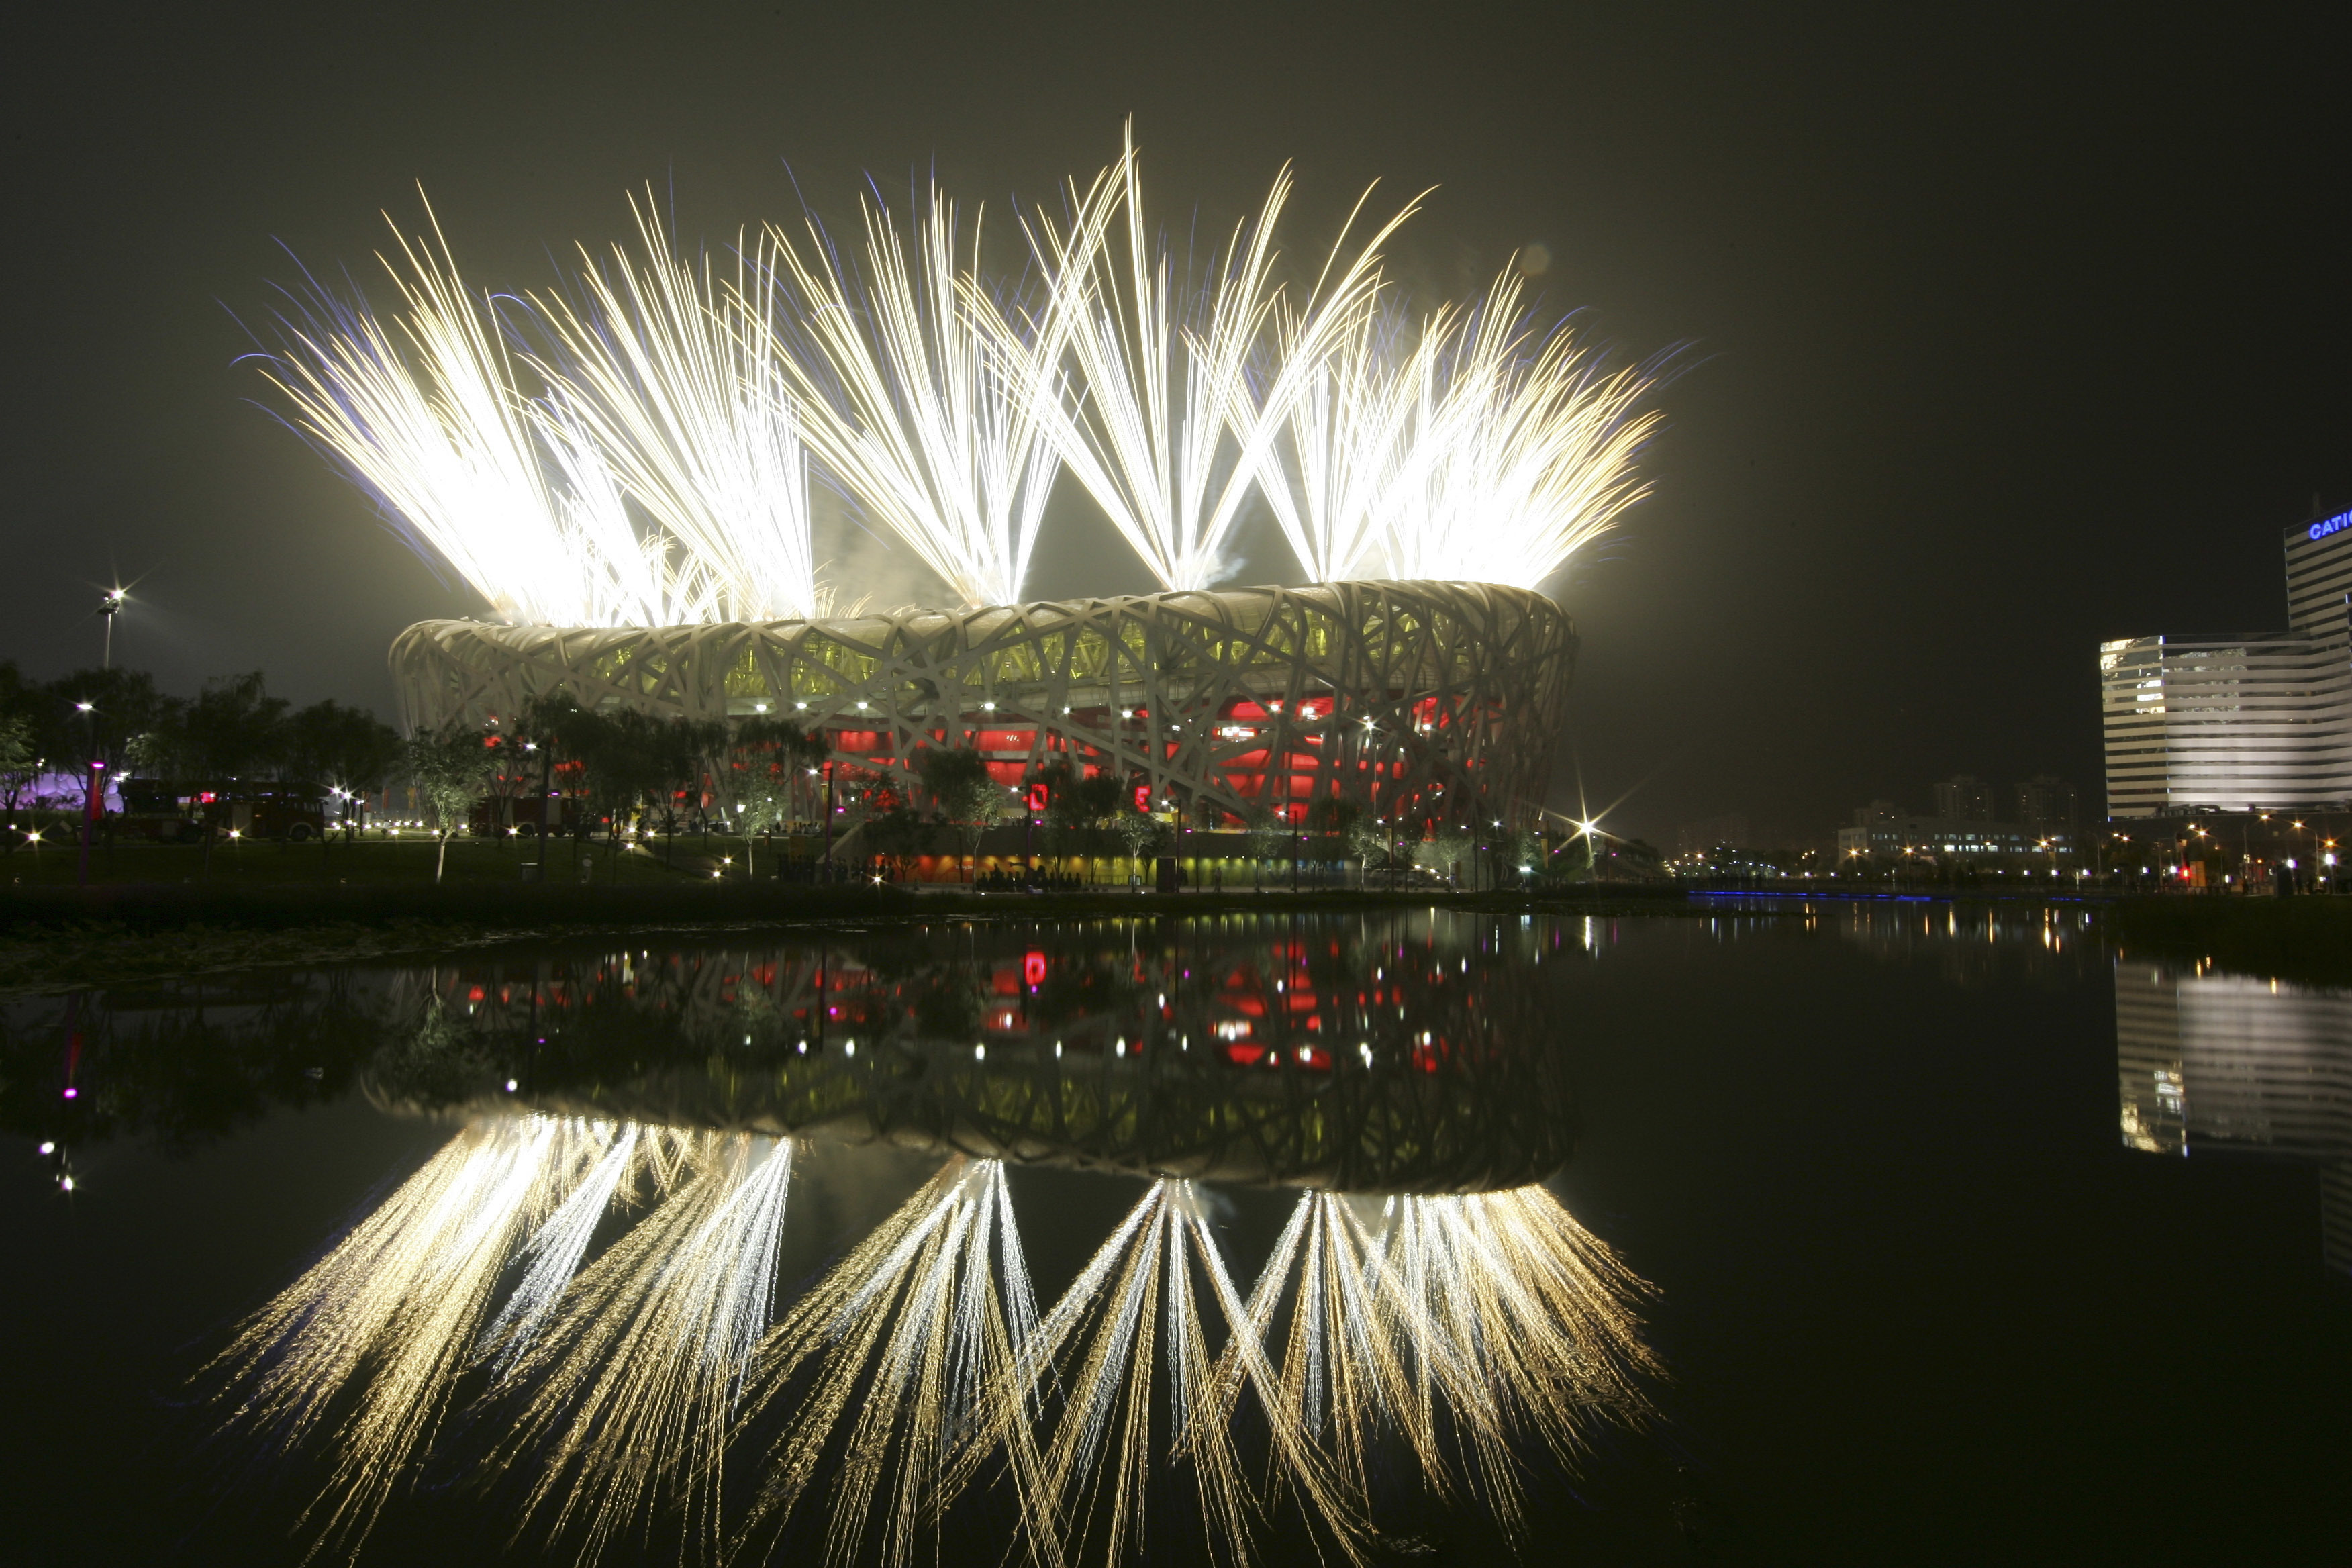 FILE - In this Aug. 8, 2008 file photo fireworks explode during the opening ceremony in the National Stadium at the Beijing 2008 Olympics in Beijing. The IOC said Friday July 22, 2016, that 45 more athletes  including 23 medalists  have been caught for do